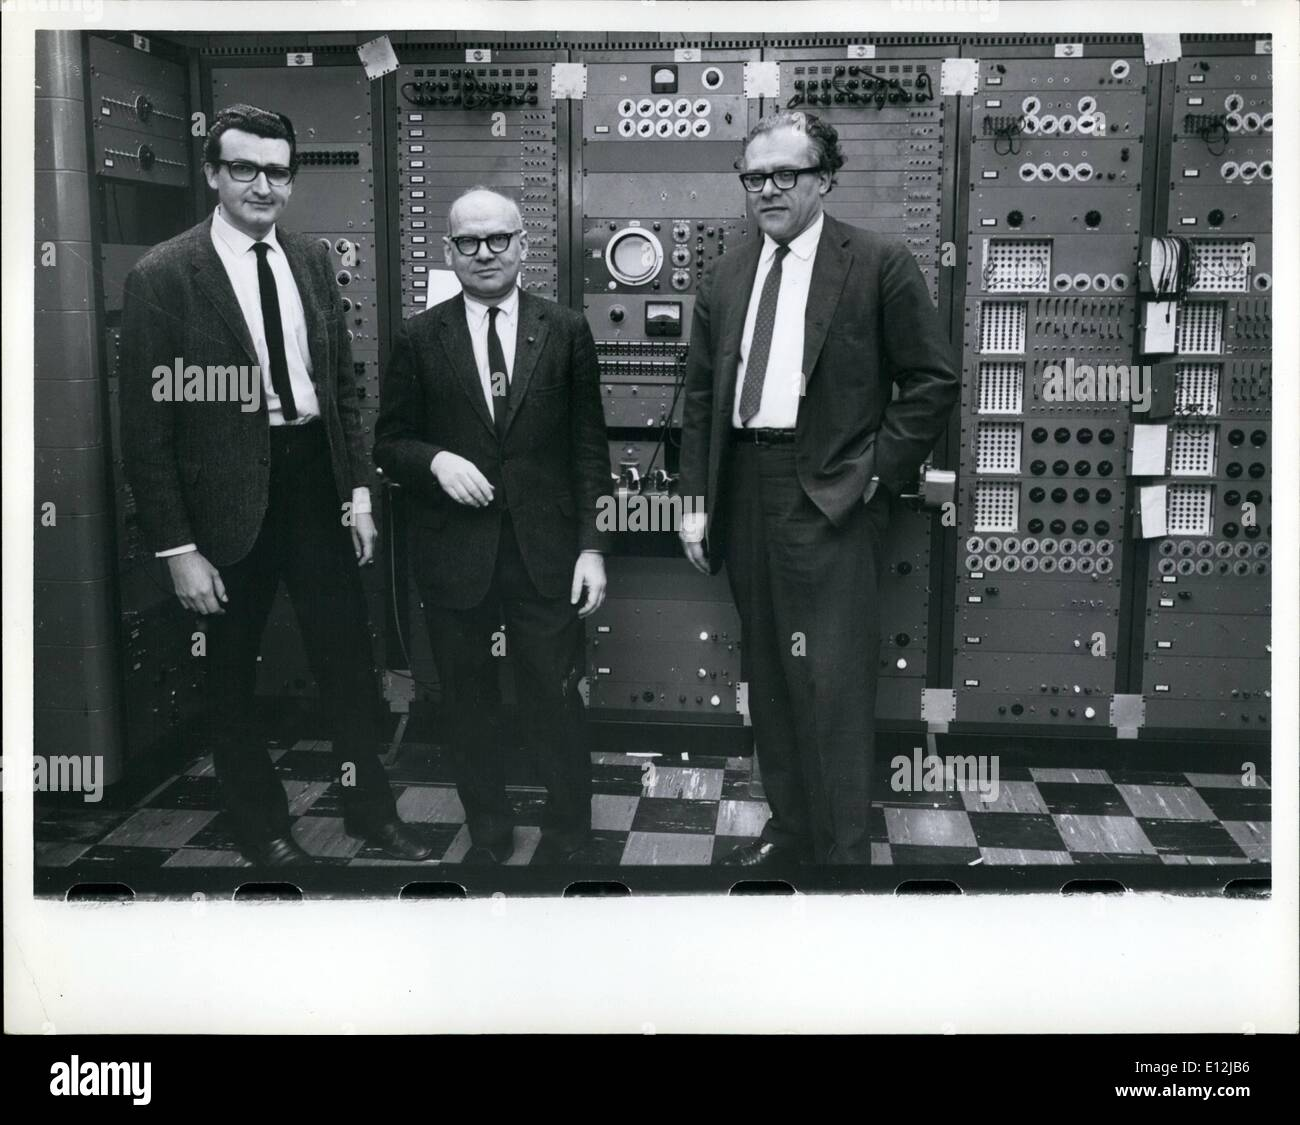 Feb. 24, 2012 - Electronic Music Center of Columbia and Princeton Universities in New York. From left to right: Argentine composer Mario Davidovsky, Milton Babbitt, American composer, Vladimir Ussachevsky, Chairman of the Columbia-Princeton Electronic Music Center. The instrument is the RCA synthesizer. - Stock Image